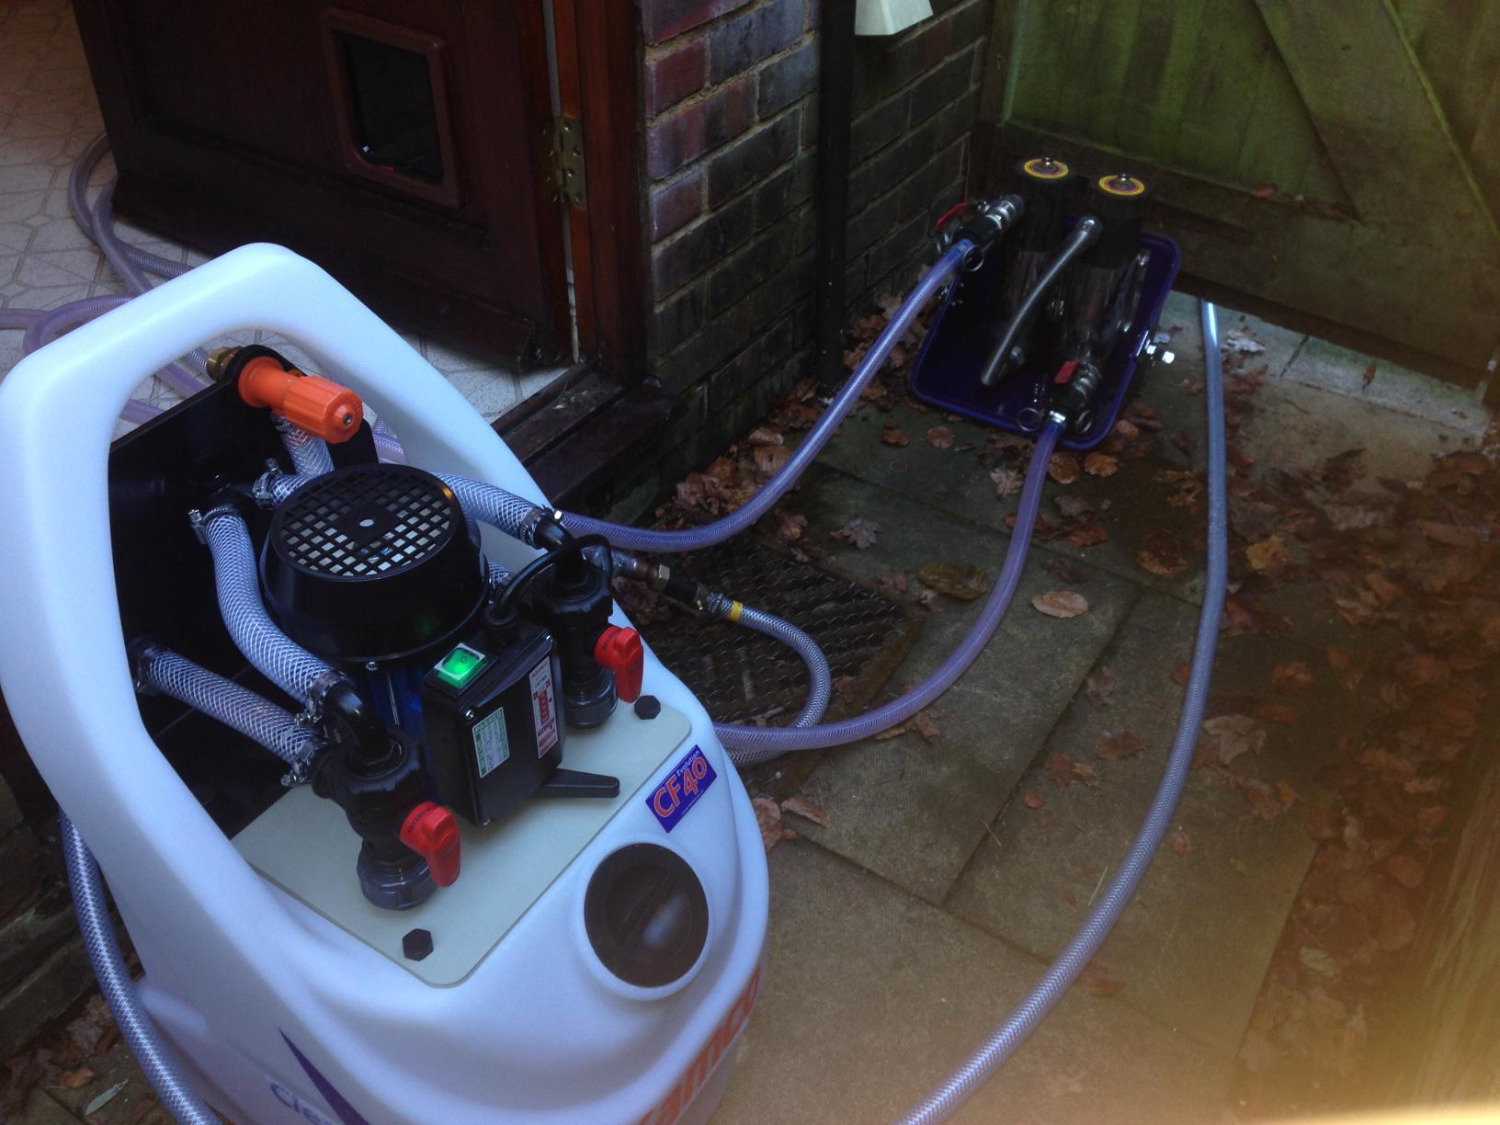 kamco powerflush.JPG 2015-1-21-21:13:20